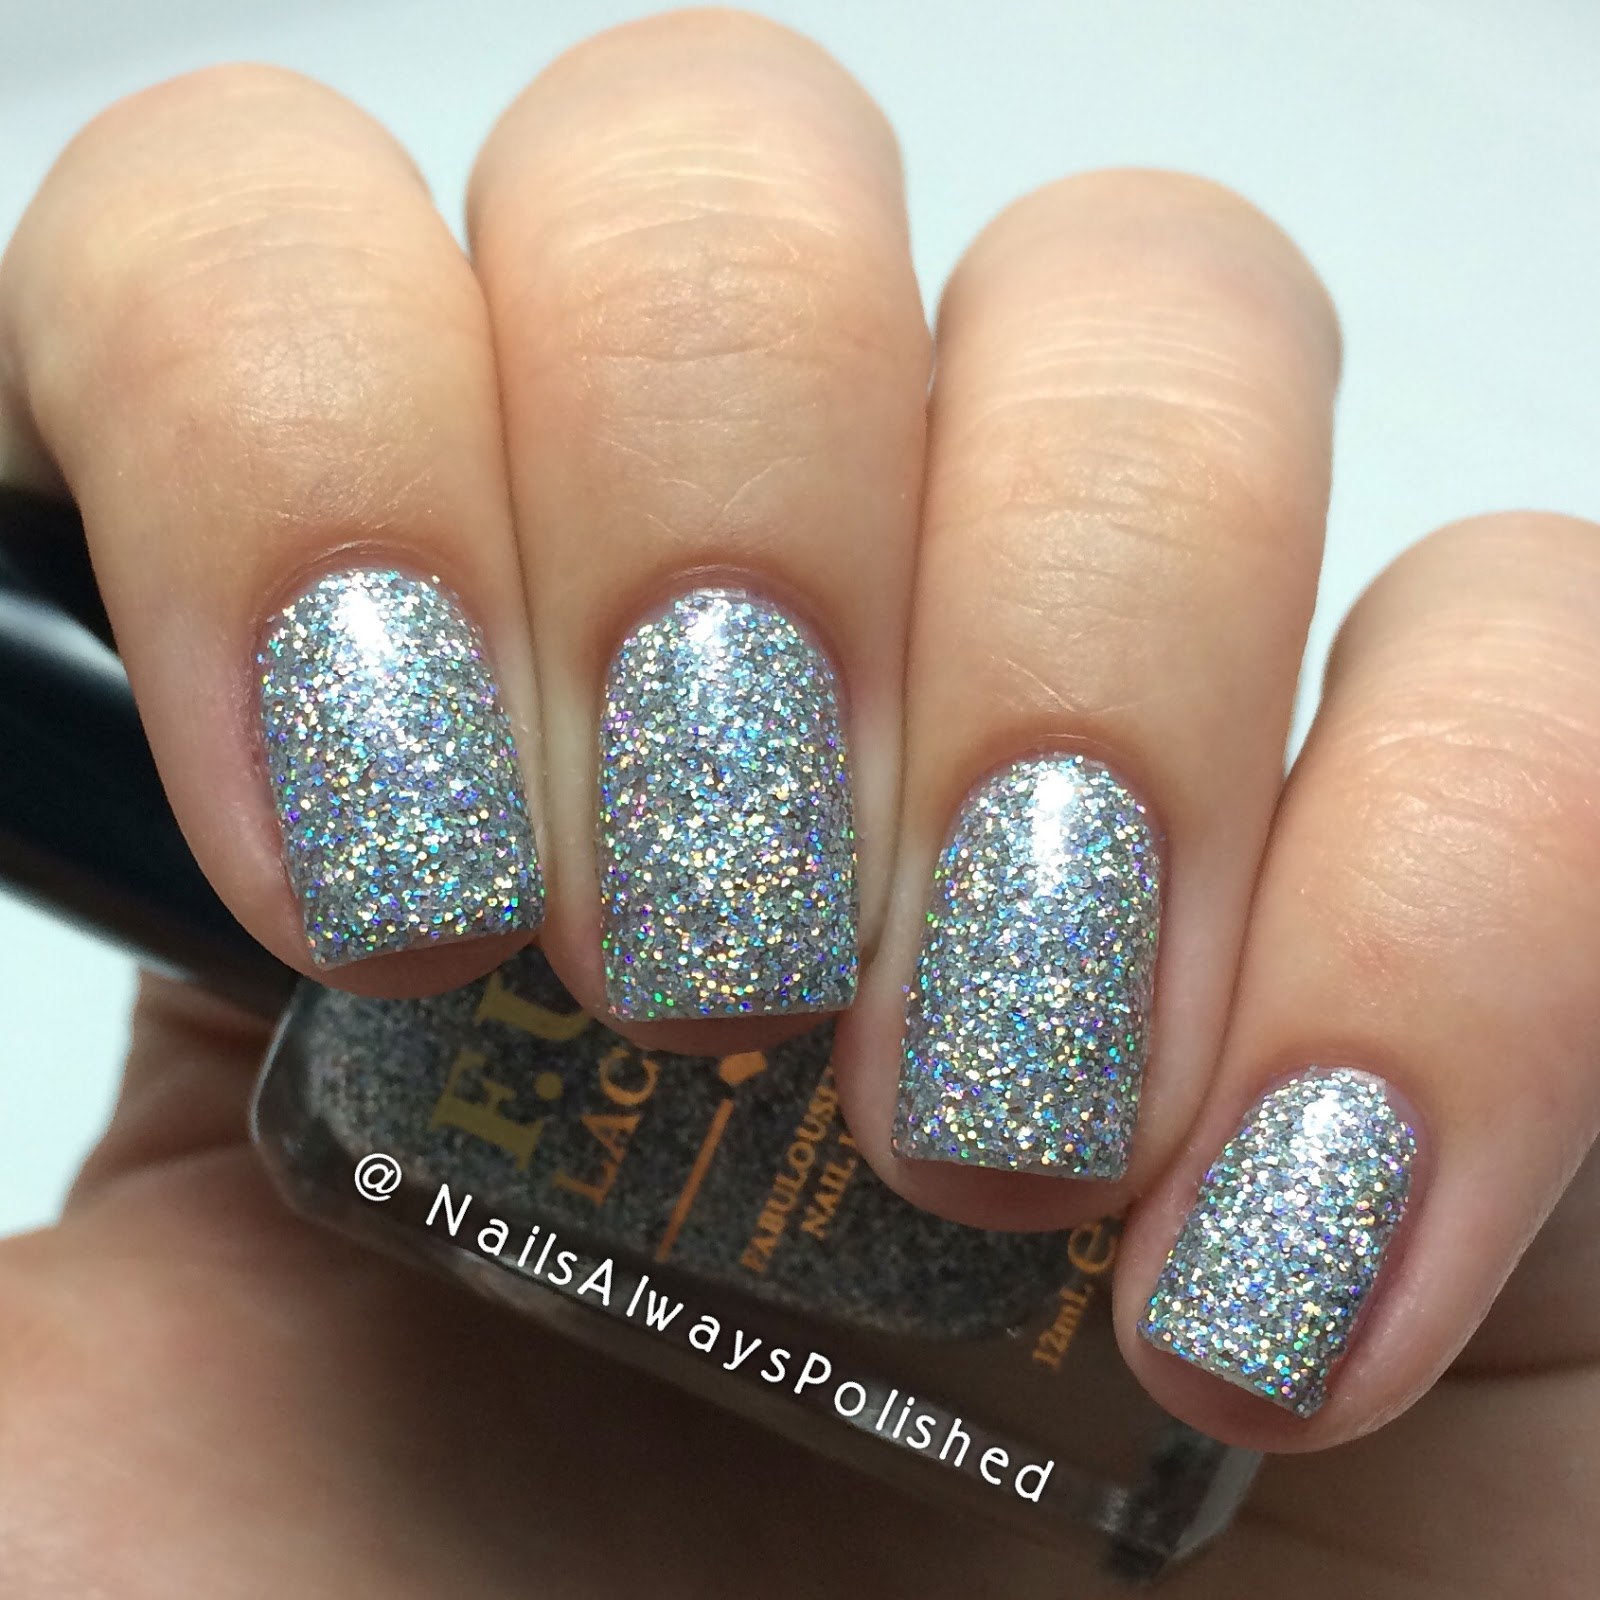 Nails Always Polished: F.U.N Lacquer 24 Karat Diamond